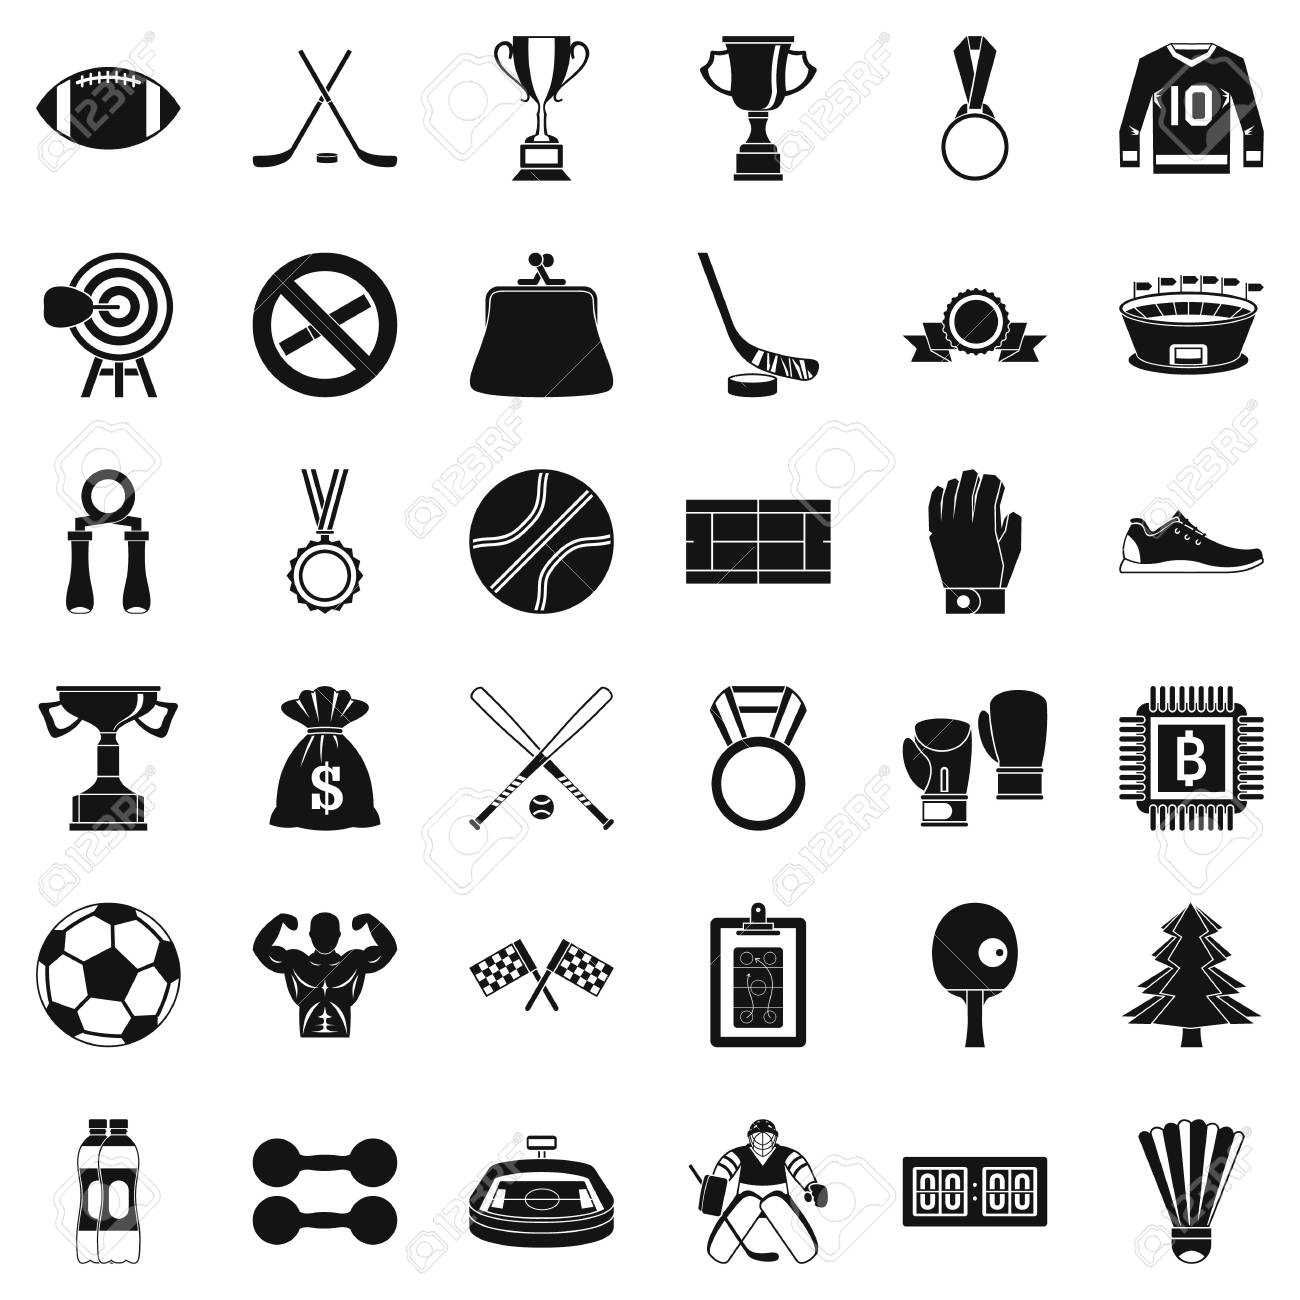 Simple style of 36 game vector icons for web isolated on white